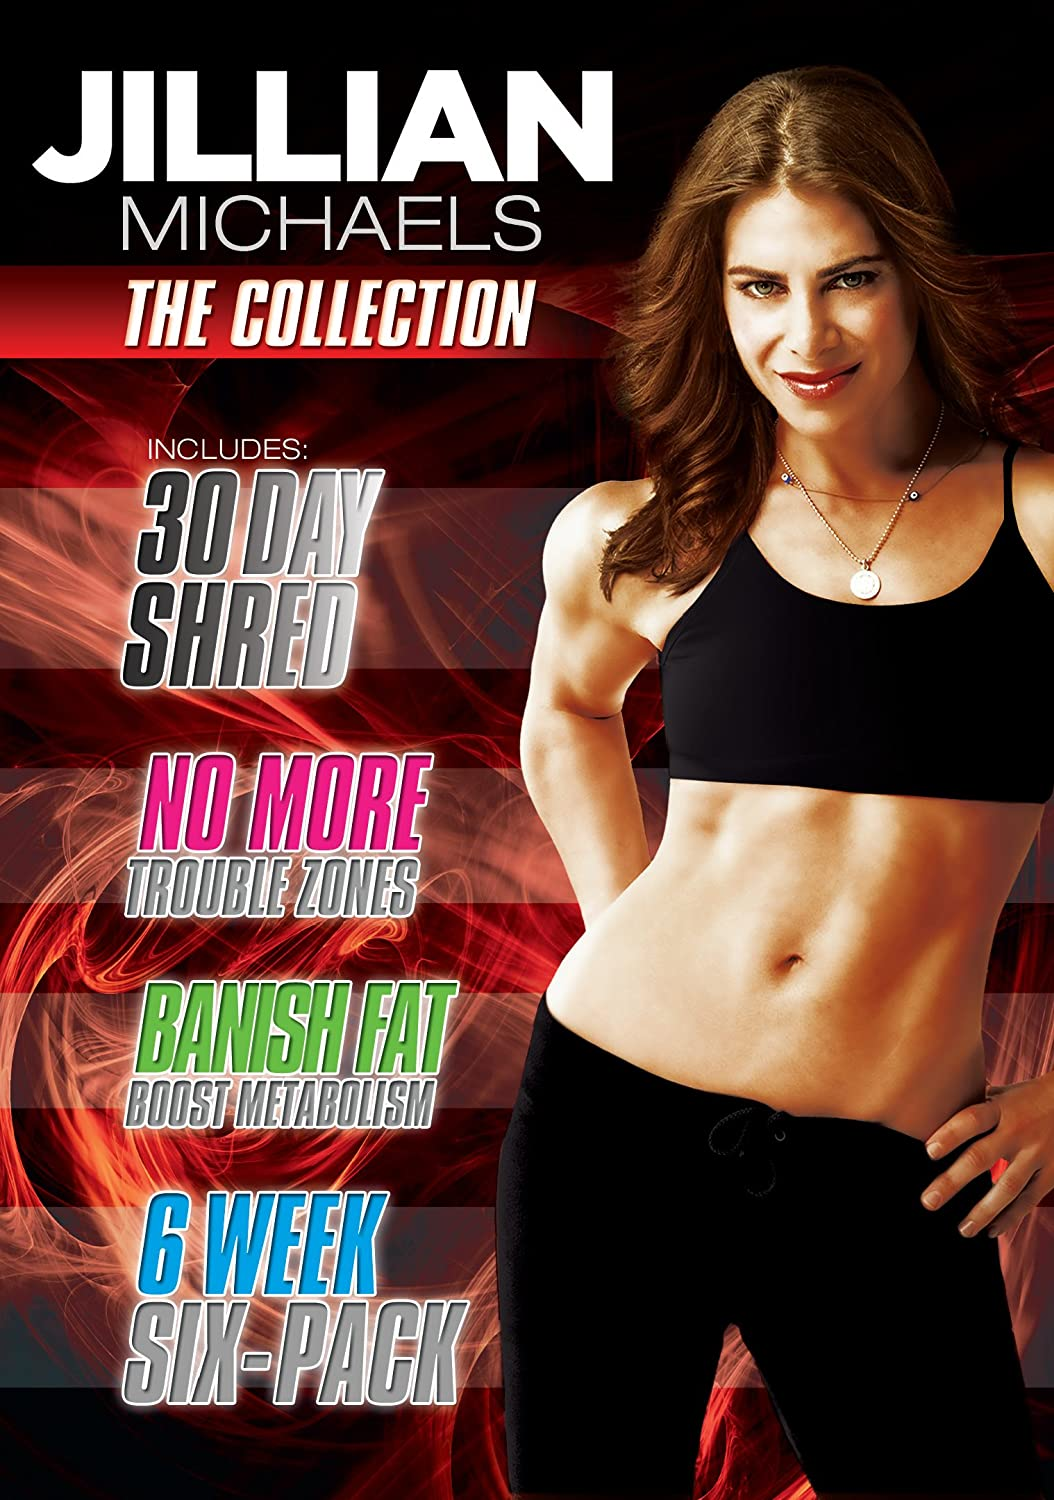 Jillian Weekly update Recommendation Michaels - The Collection